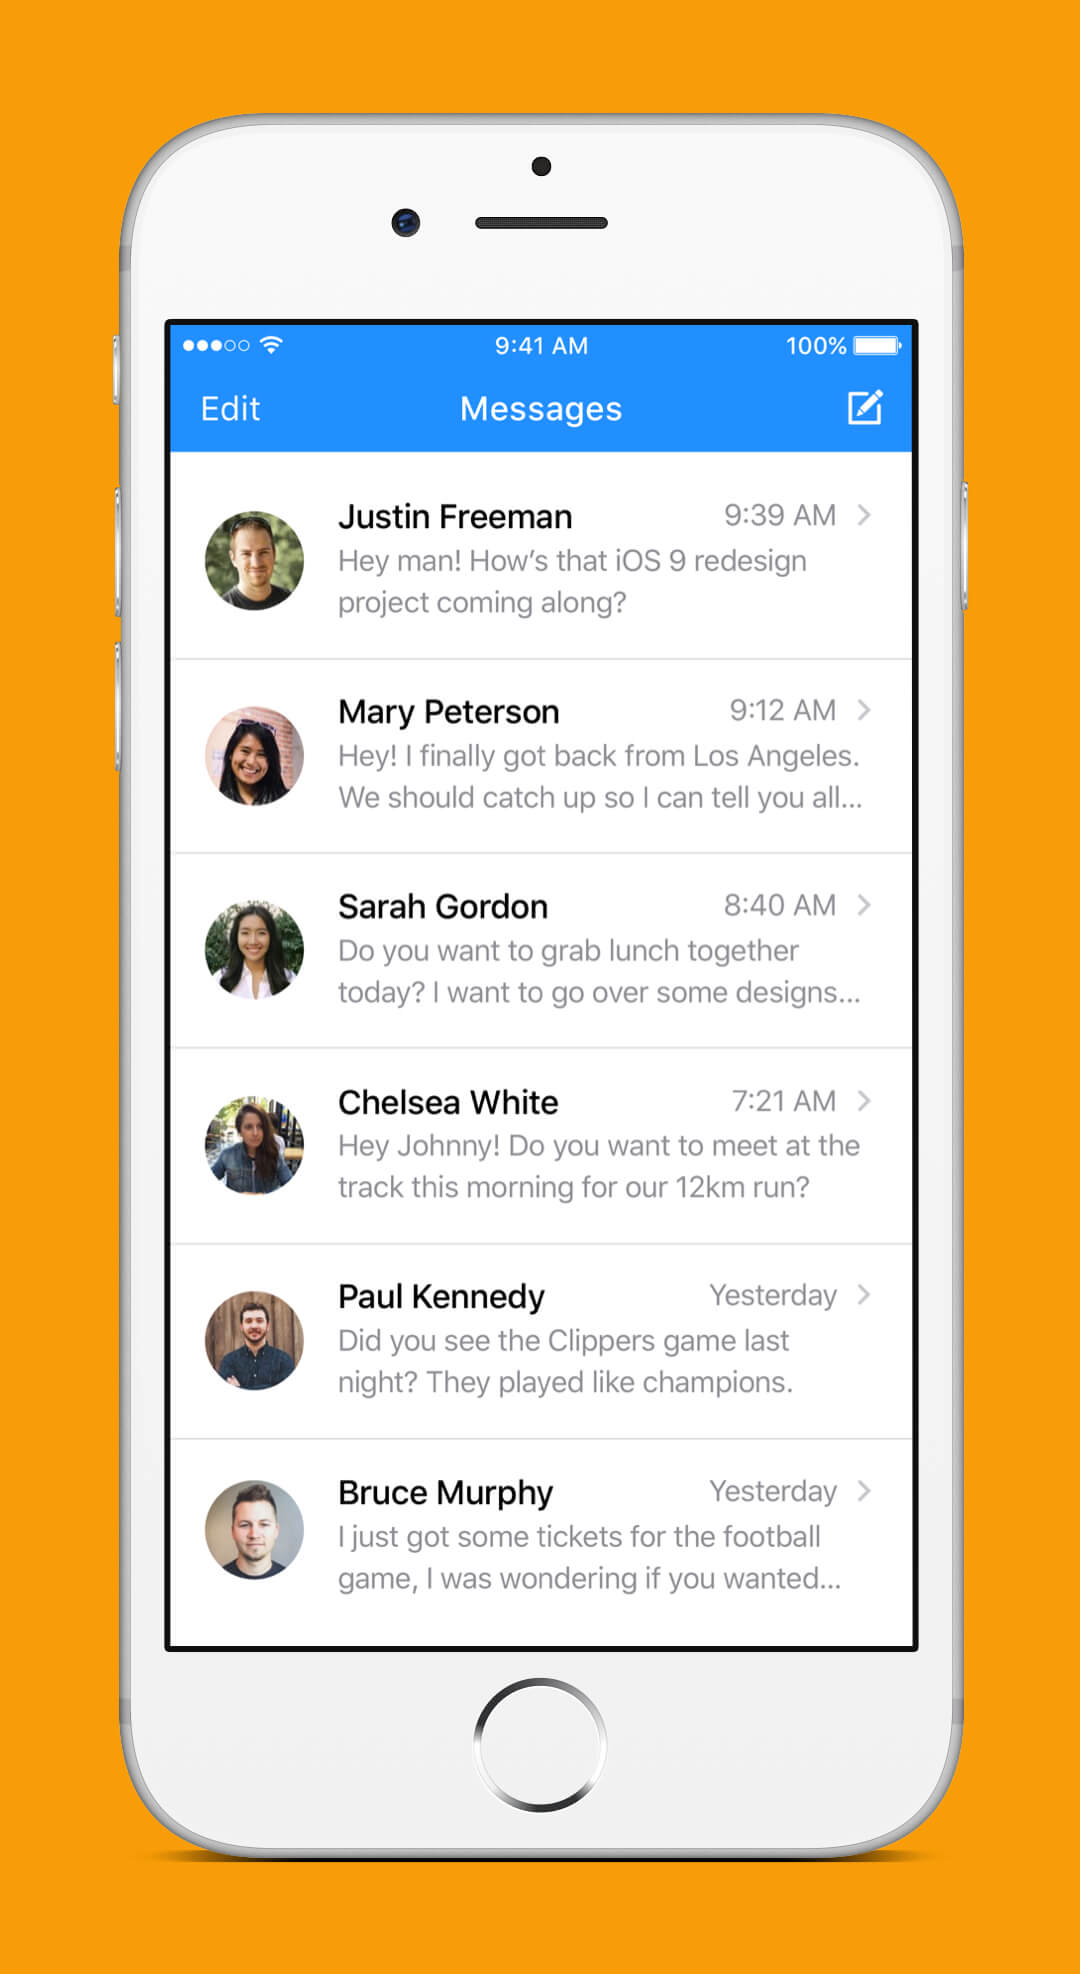 iOS 9 Redesign - Messages Screen